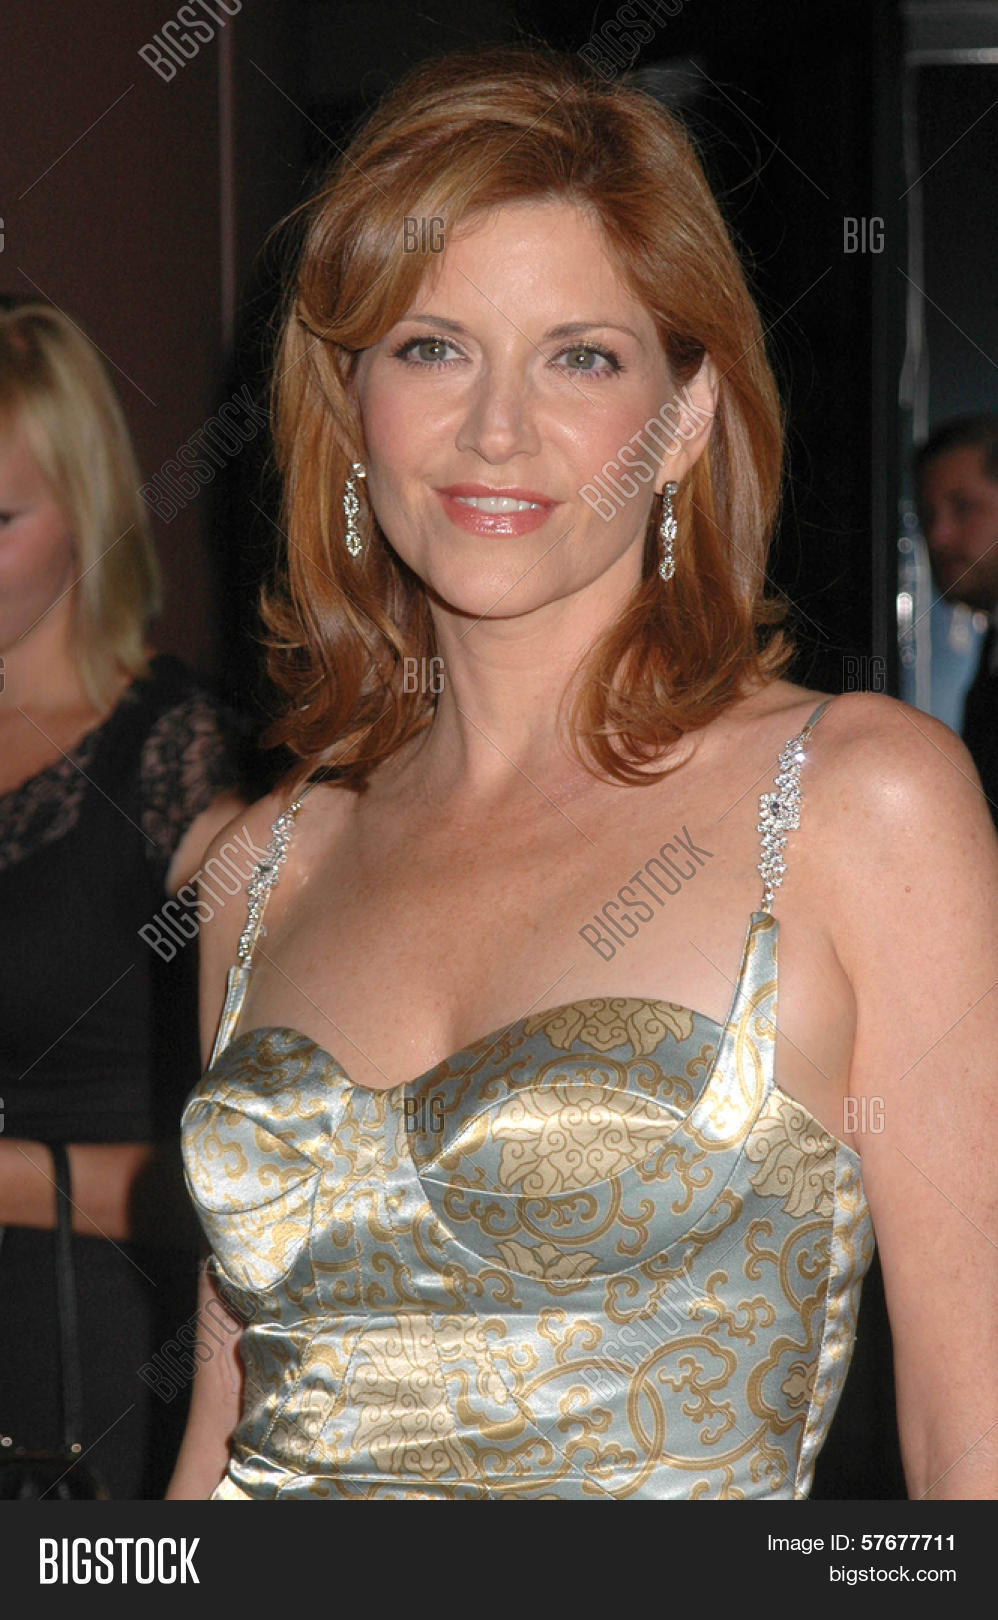 Watch Melinda McGraw video